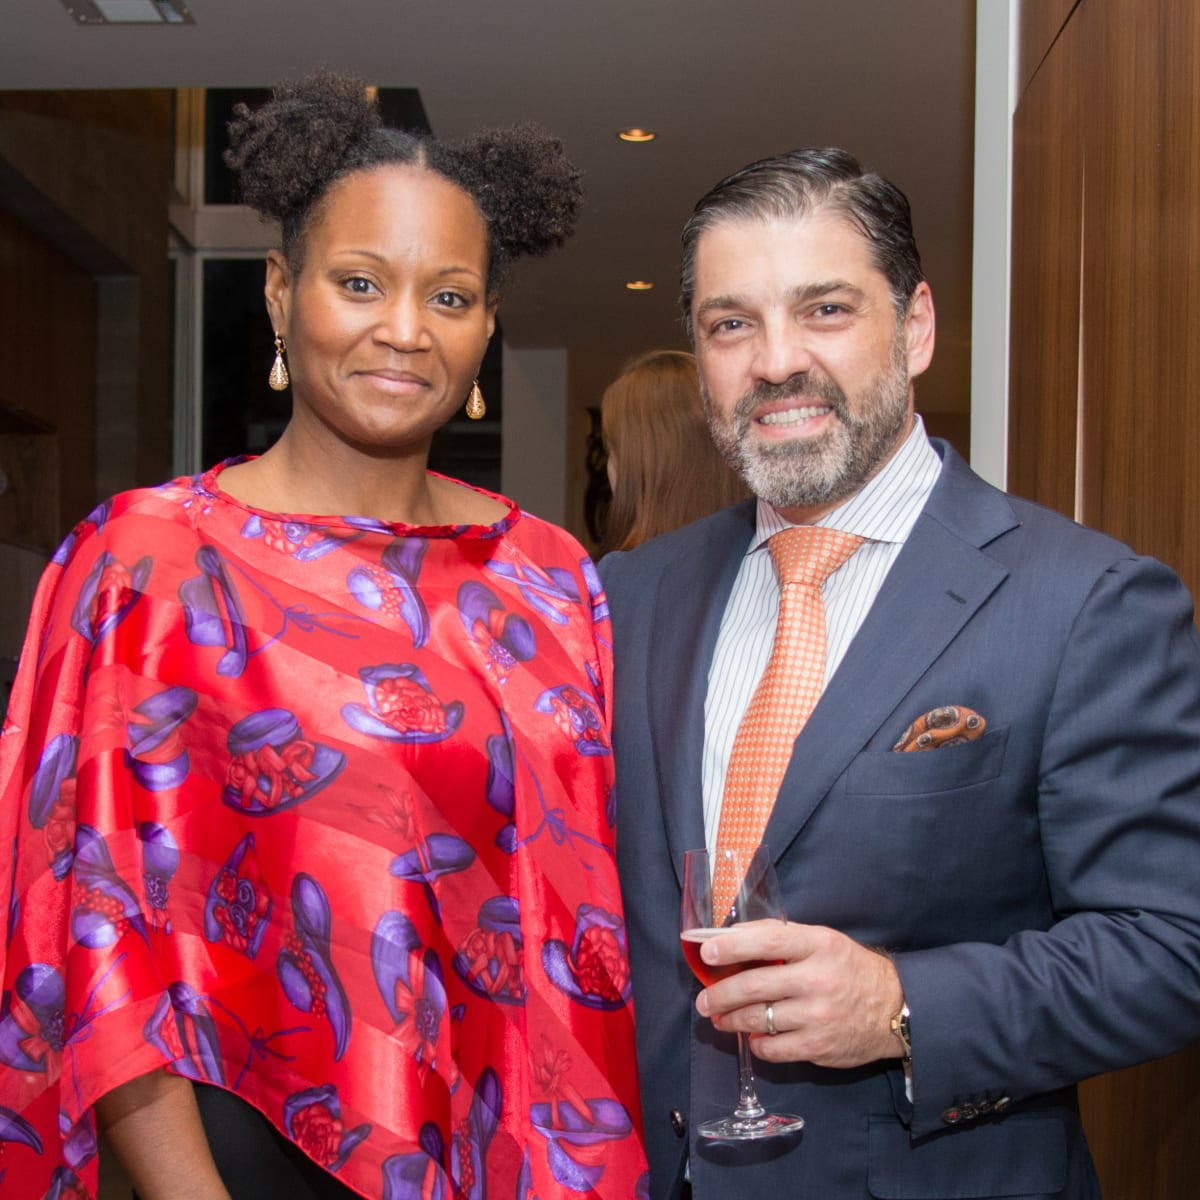 Houston, HGO Young Patrons event, October 2015, Charyn McGinnis, Alfredo Vilas